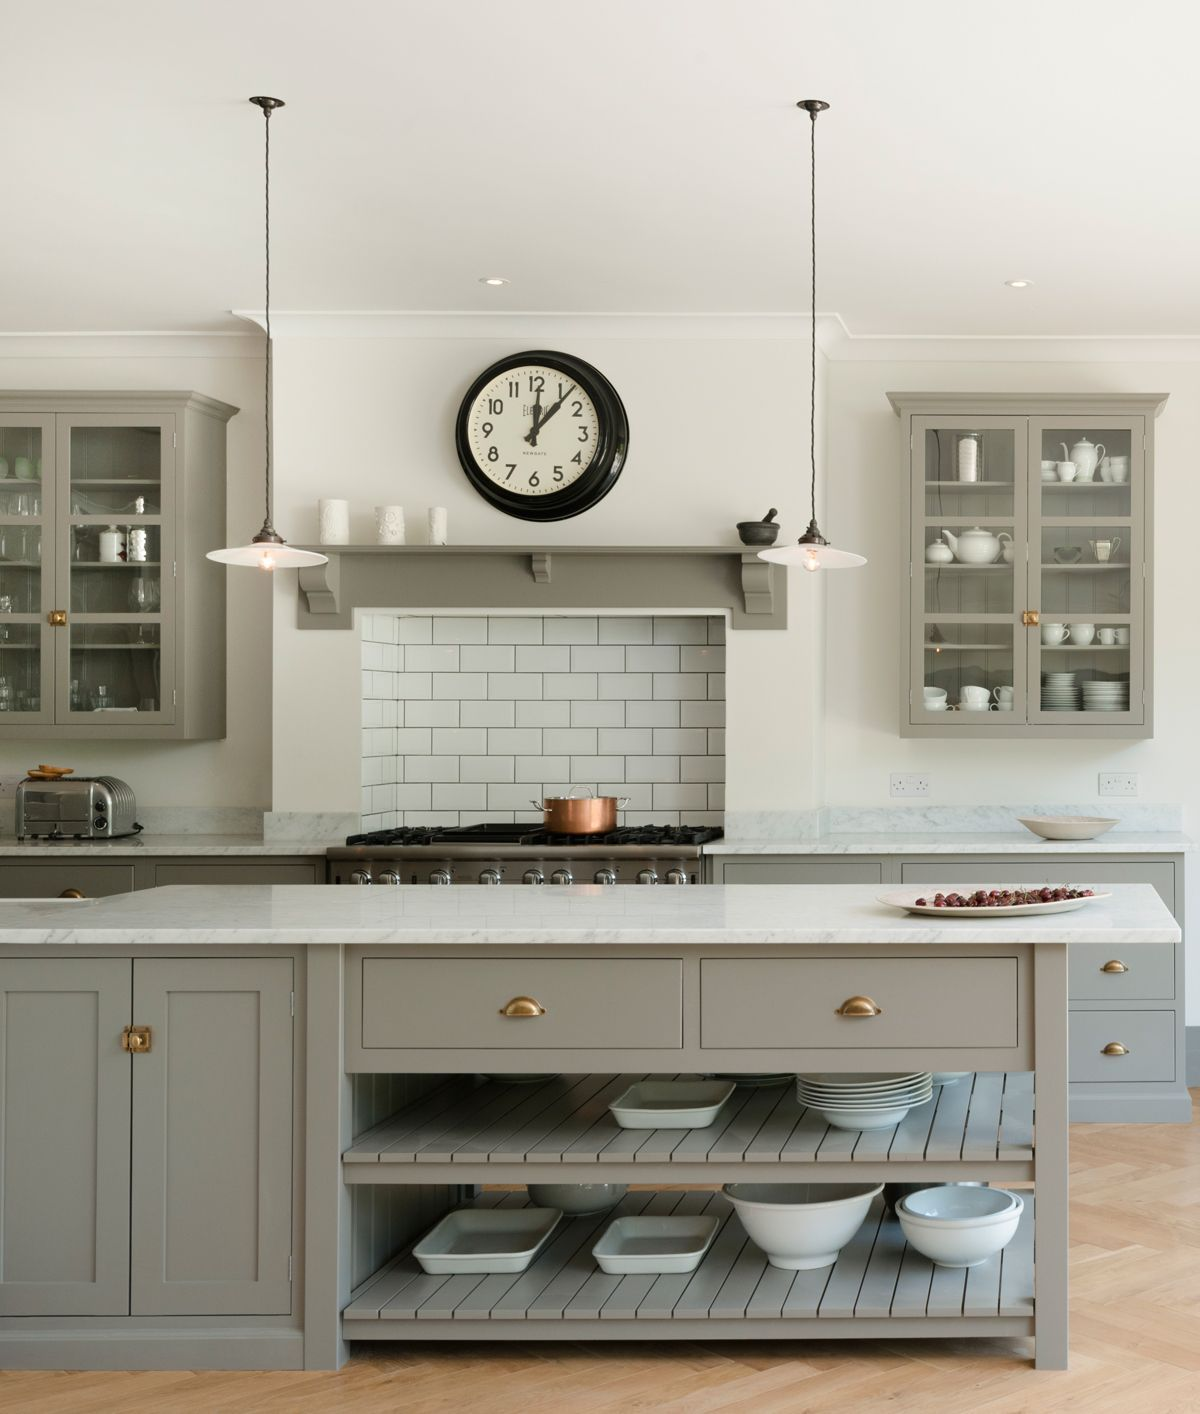 Pendant Lighting Gives This Modern Kitchen A New Twist